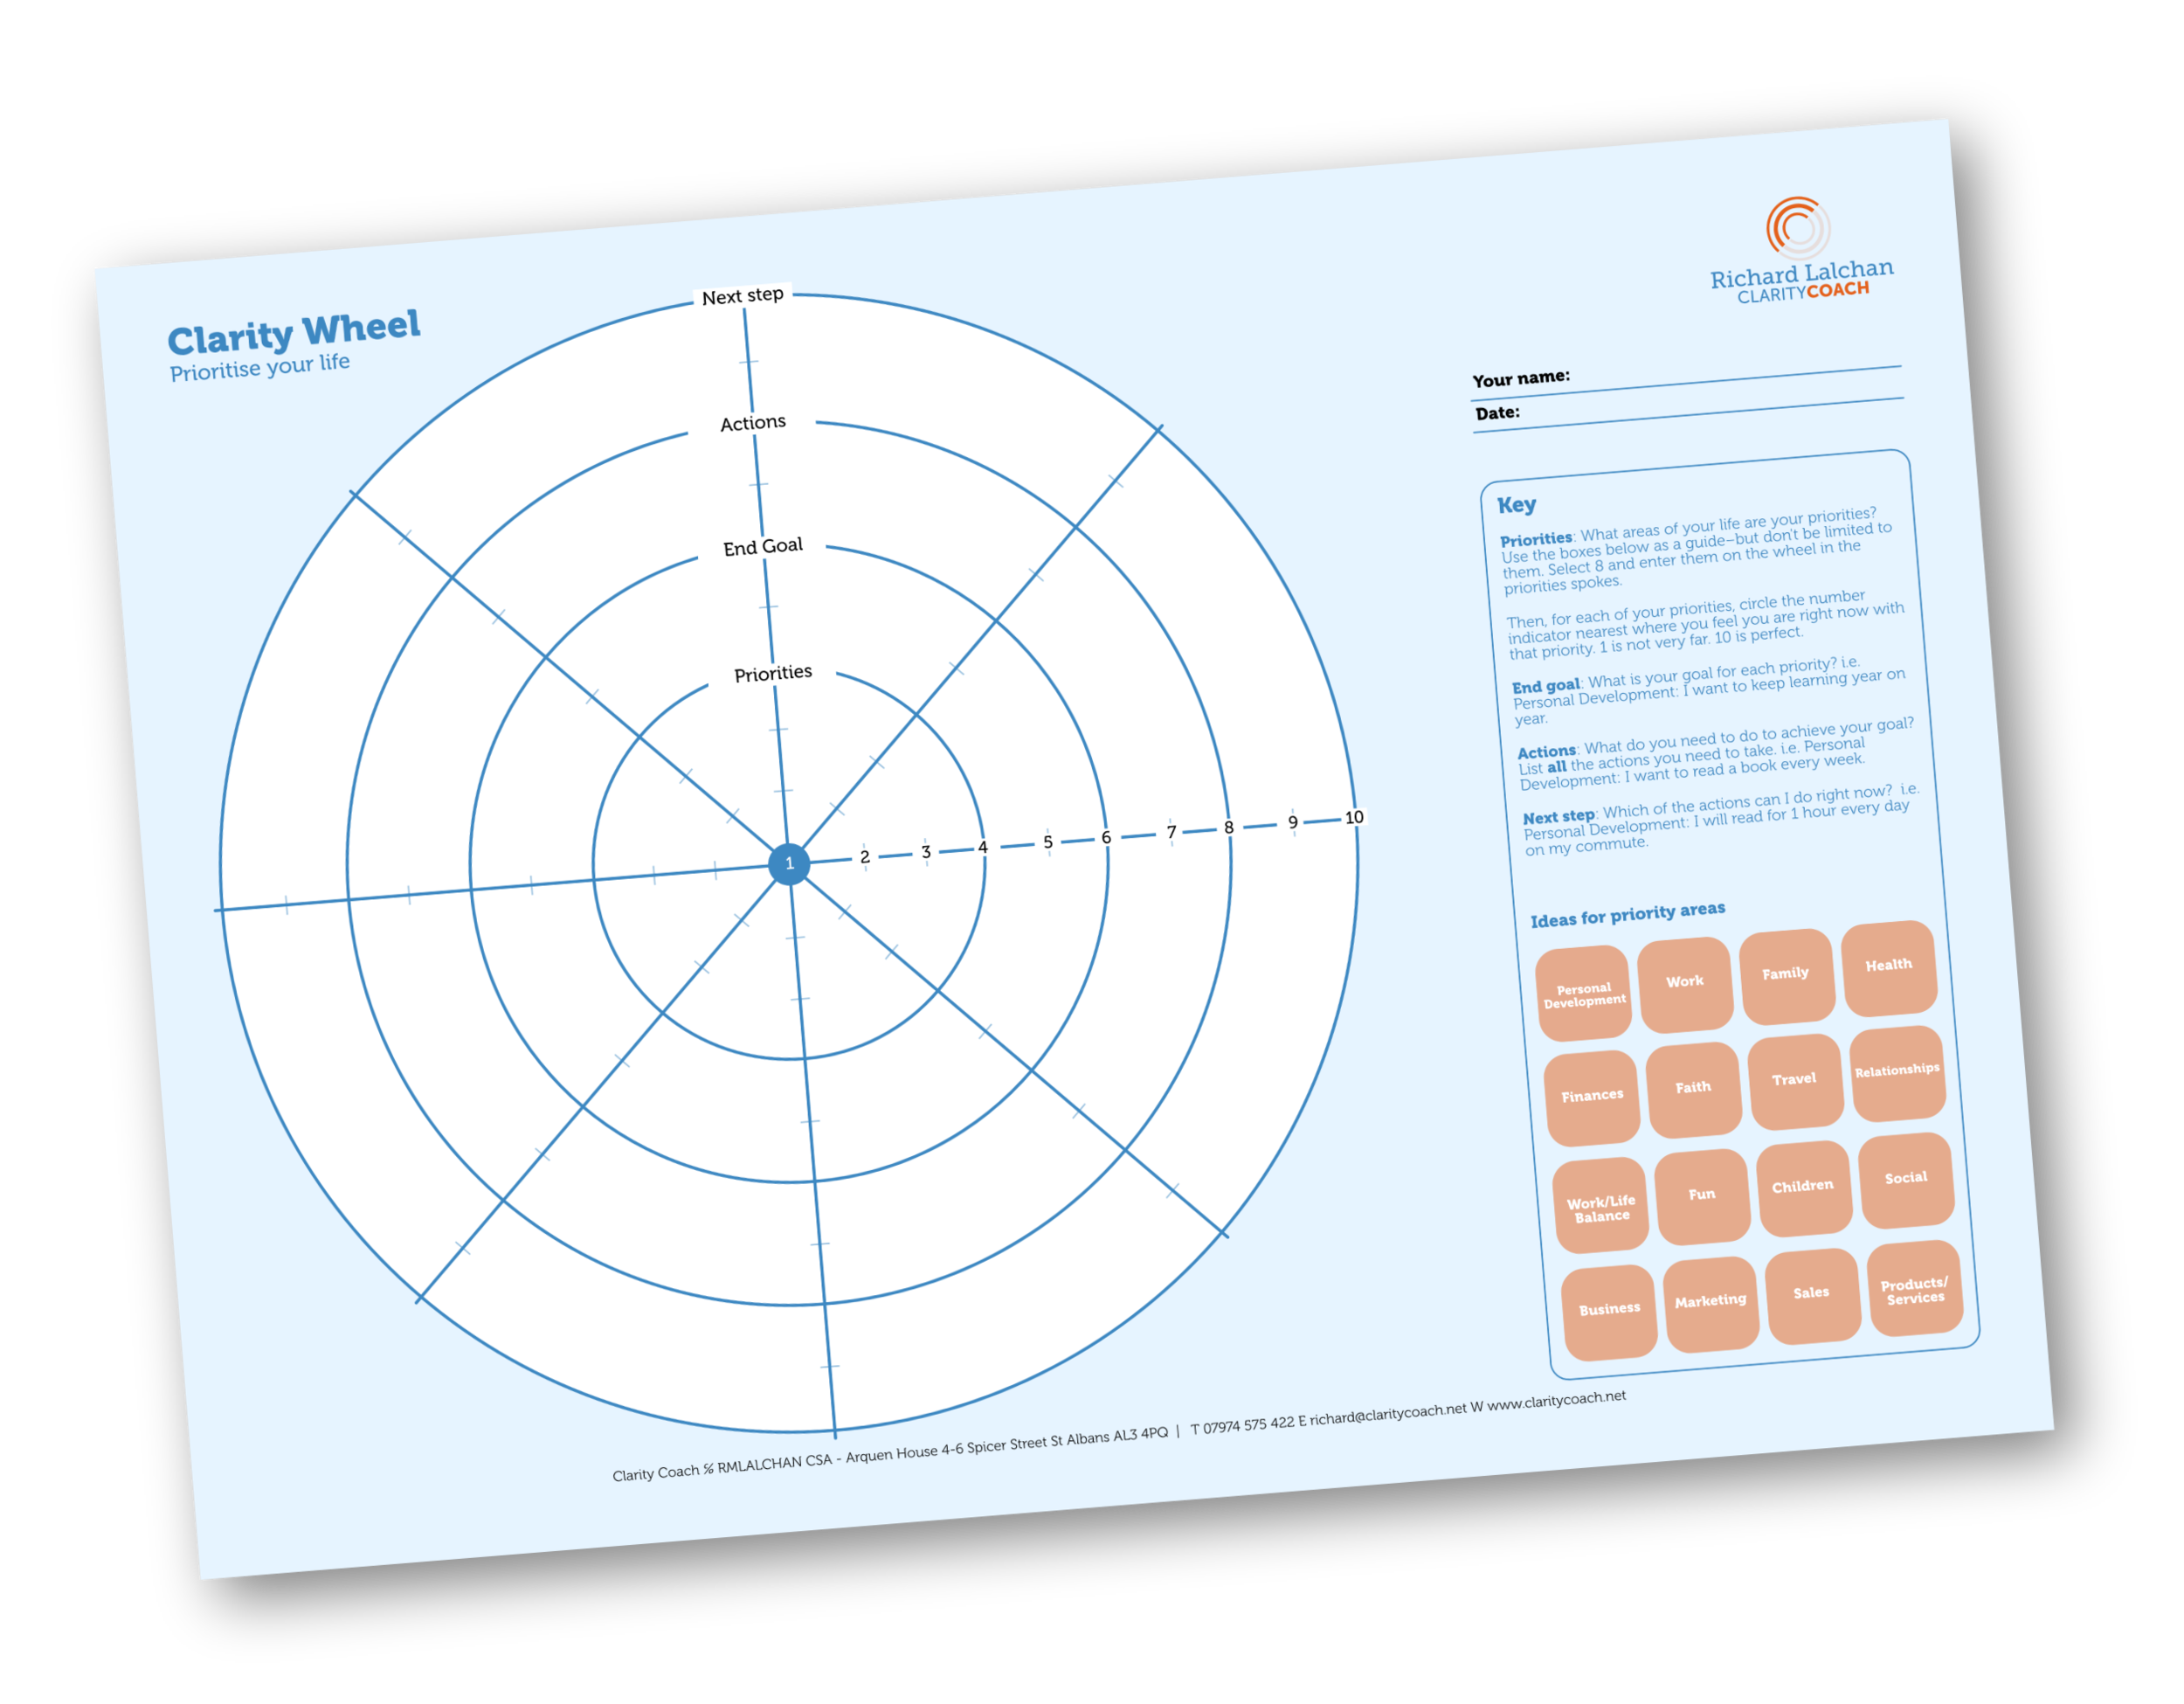 FREE Download: - The Clarity Wheel